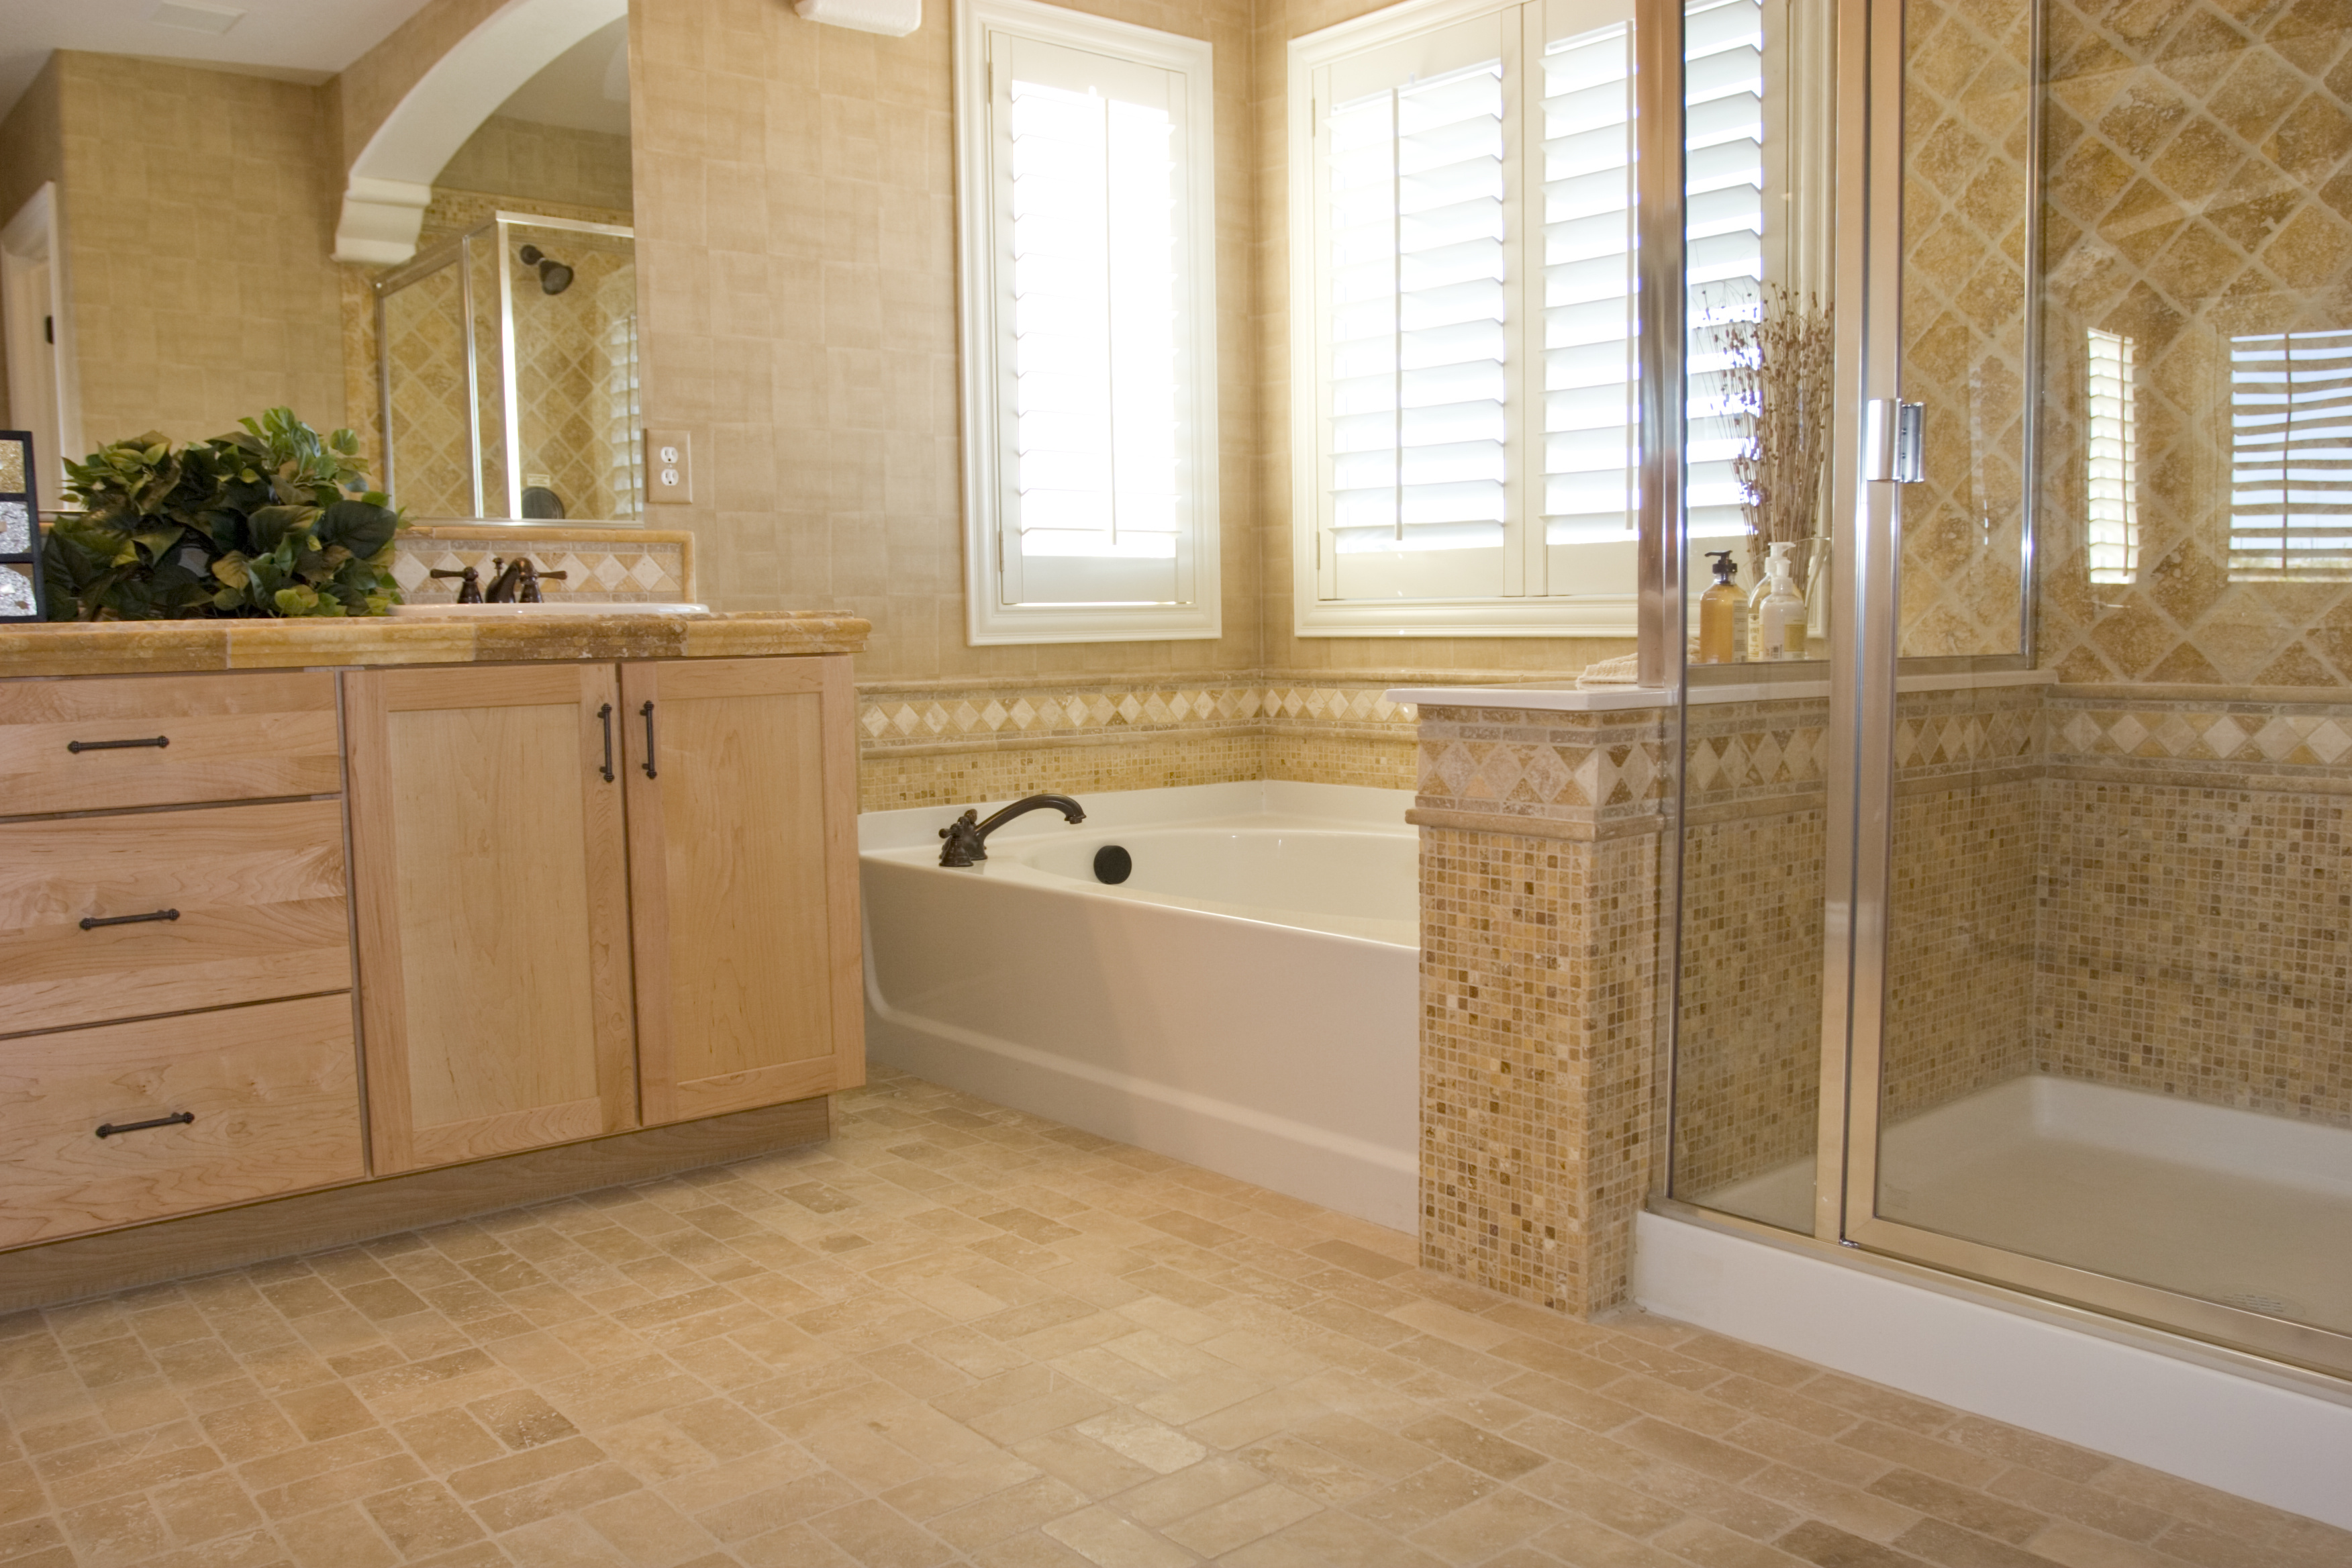 Remodel Bathroom Floor Upscale Bathroom Remodel  St Louis Bathroom Remodeling Experts